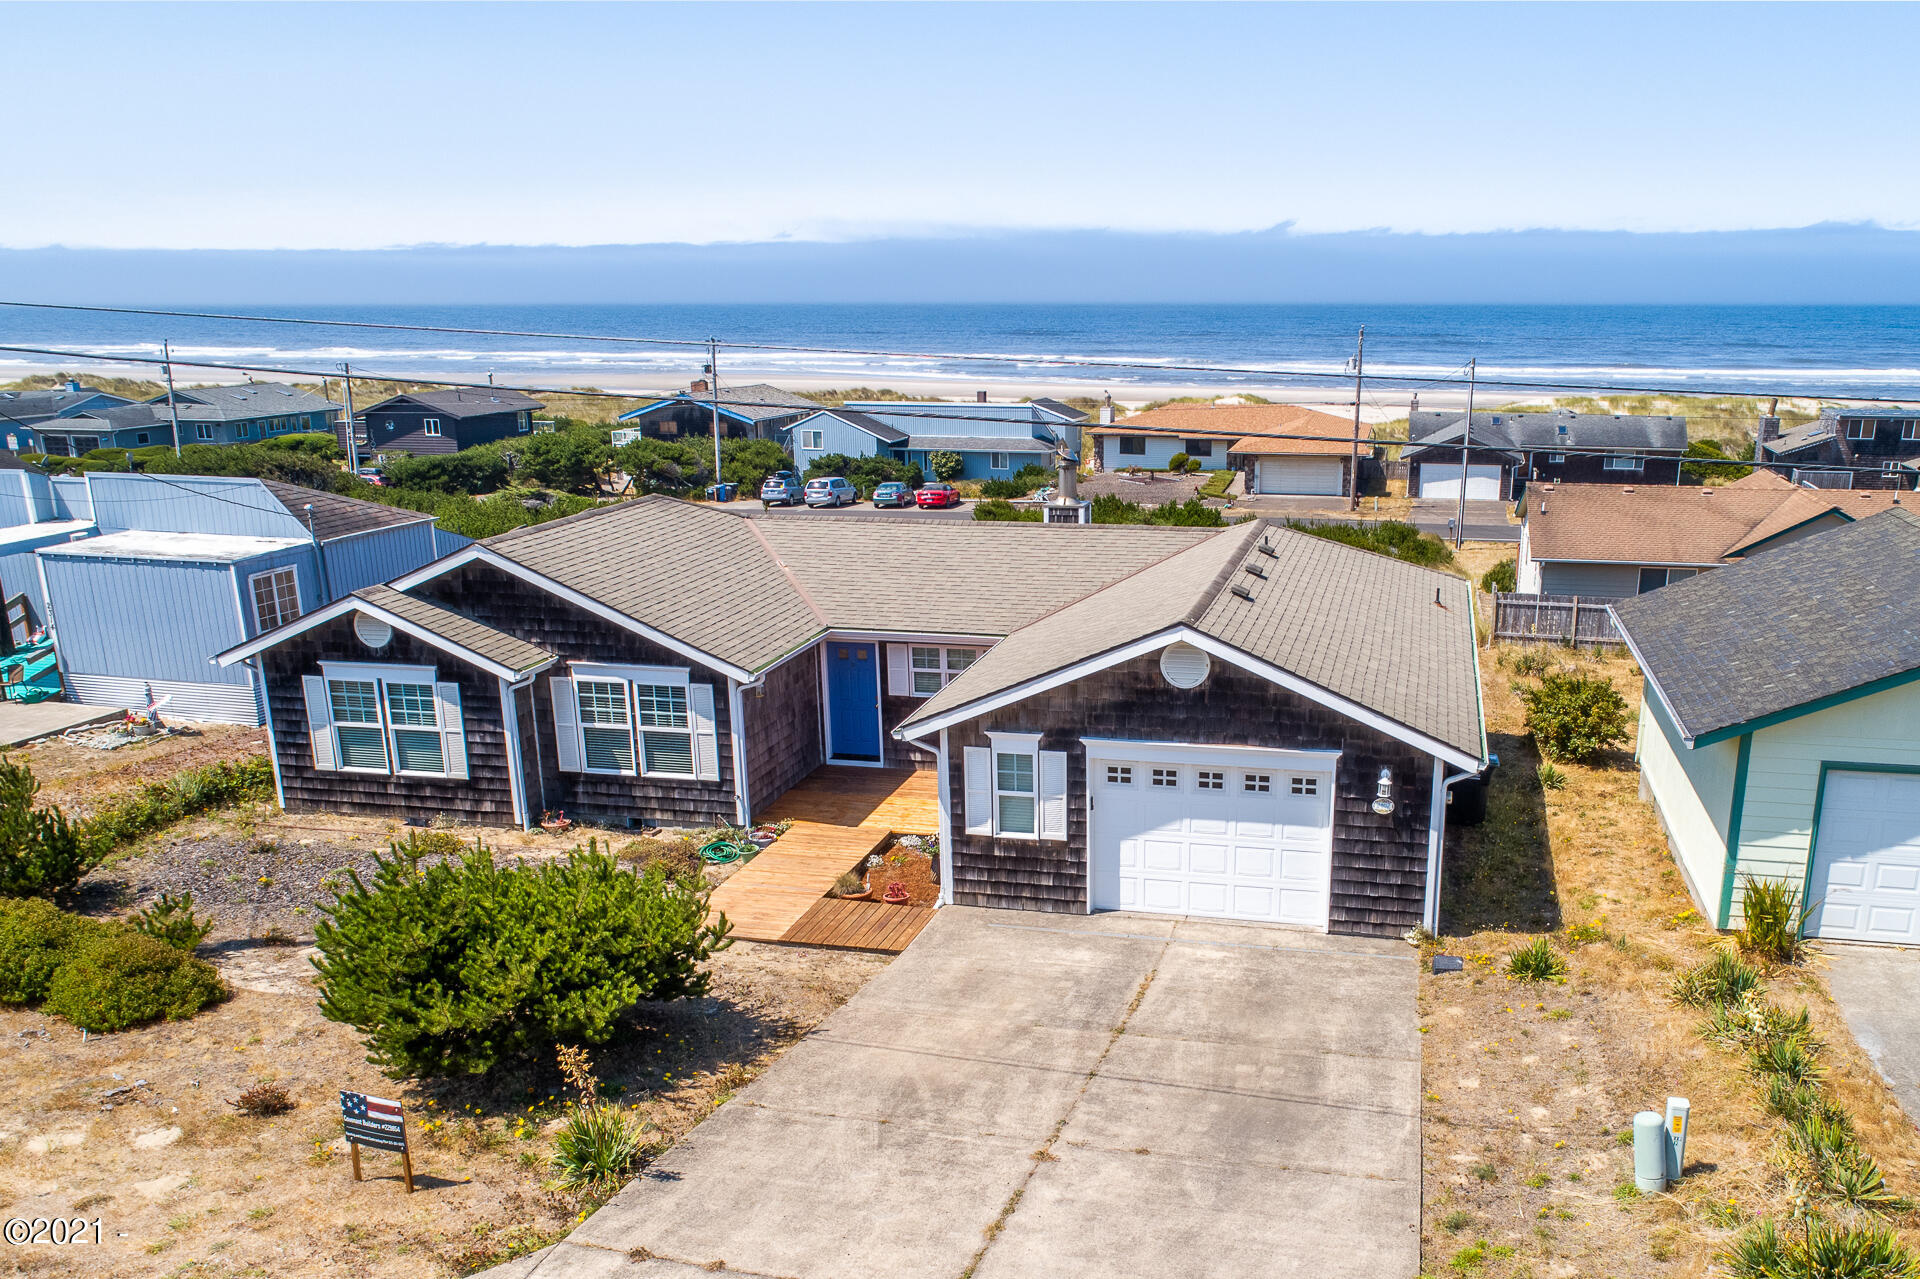 2402 NW Convoy Way, Waldport, OR 97394 - Aerial View of House